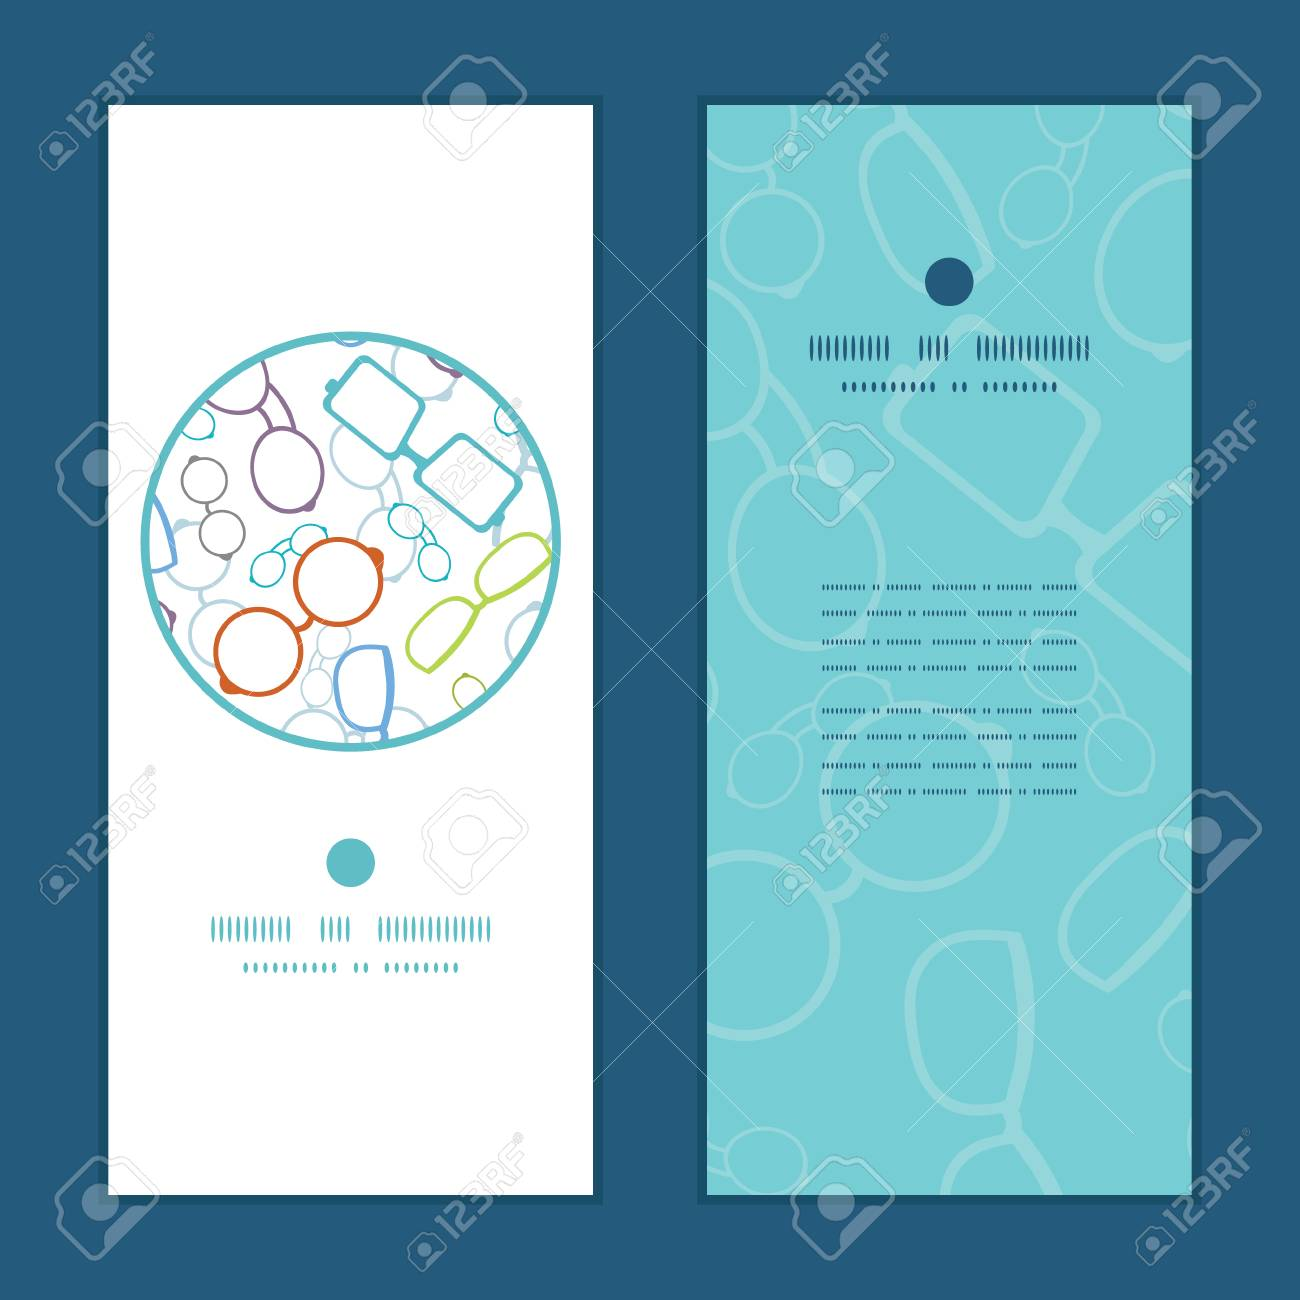 Vector colorful glasses vertical round frame pattern invitation greeting cards set - 35997432